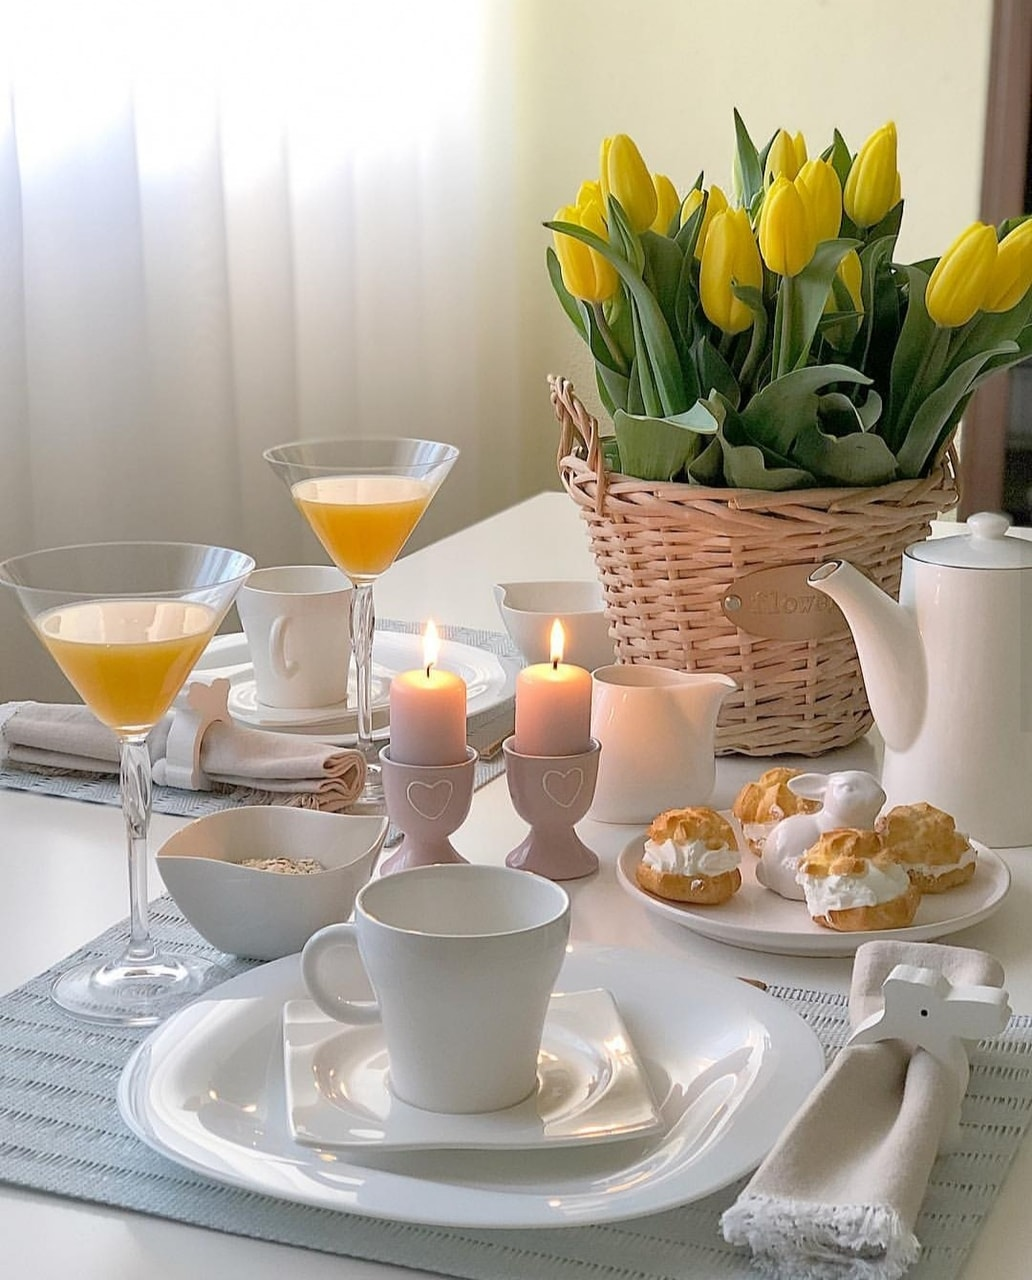 coffee time, bouquet of flowers, beautiful life and good morning